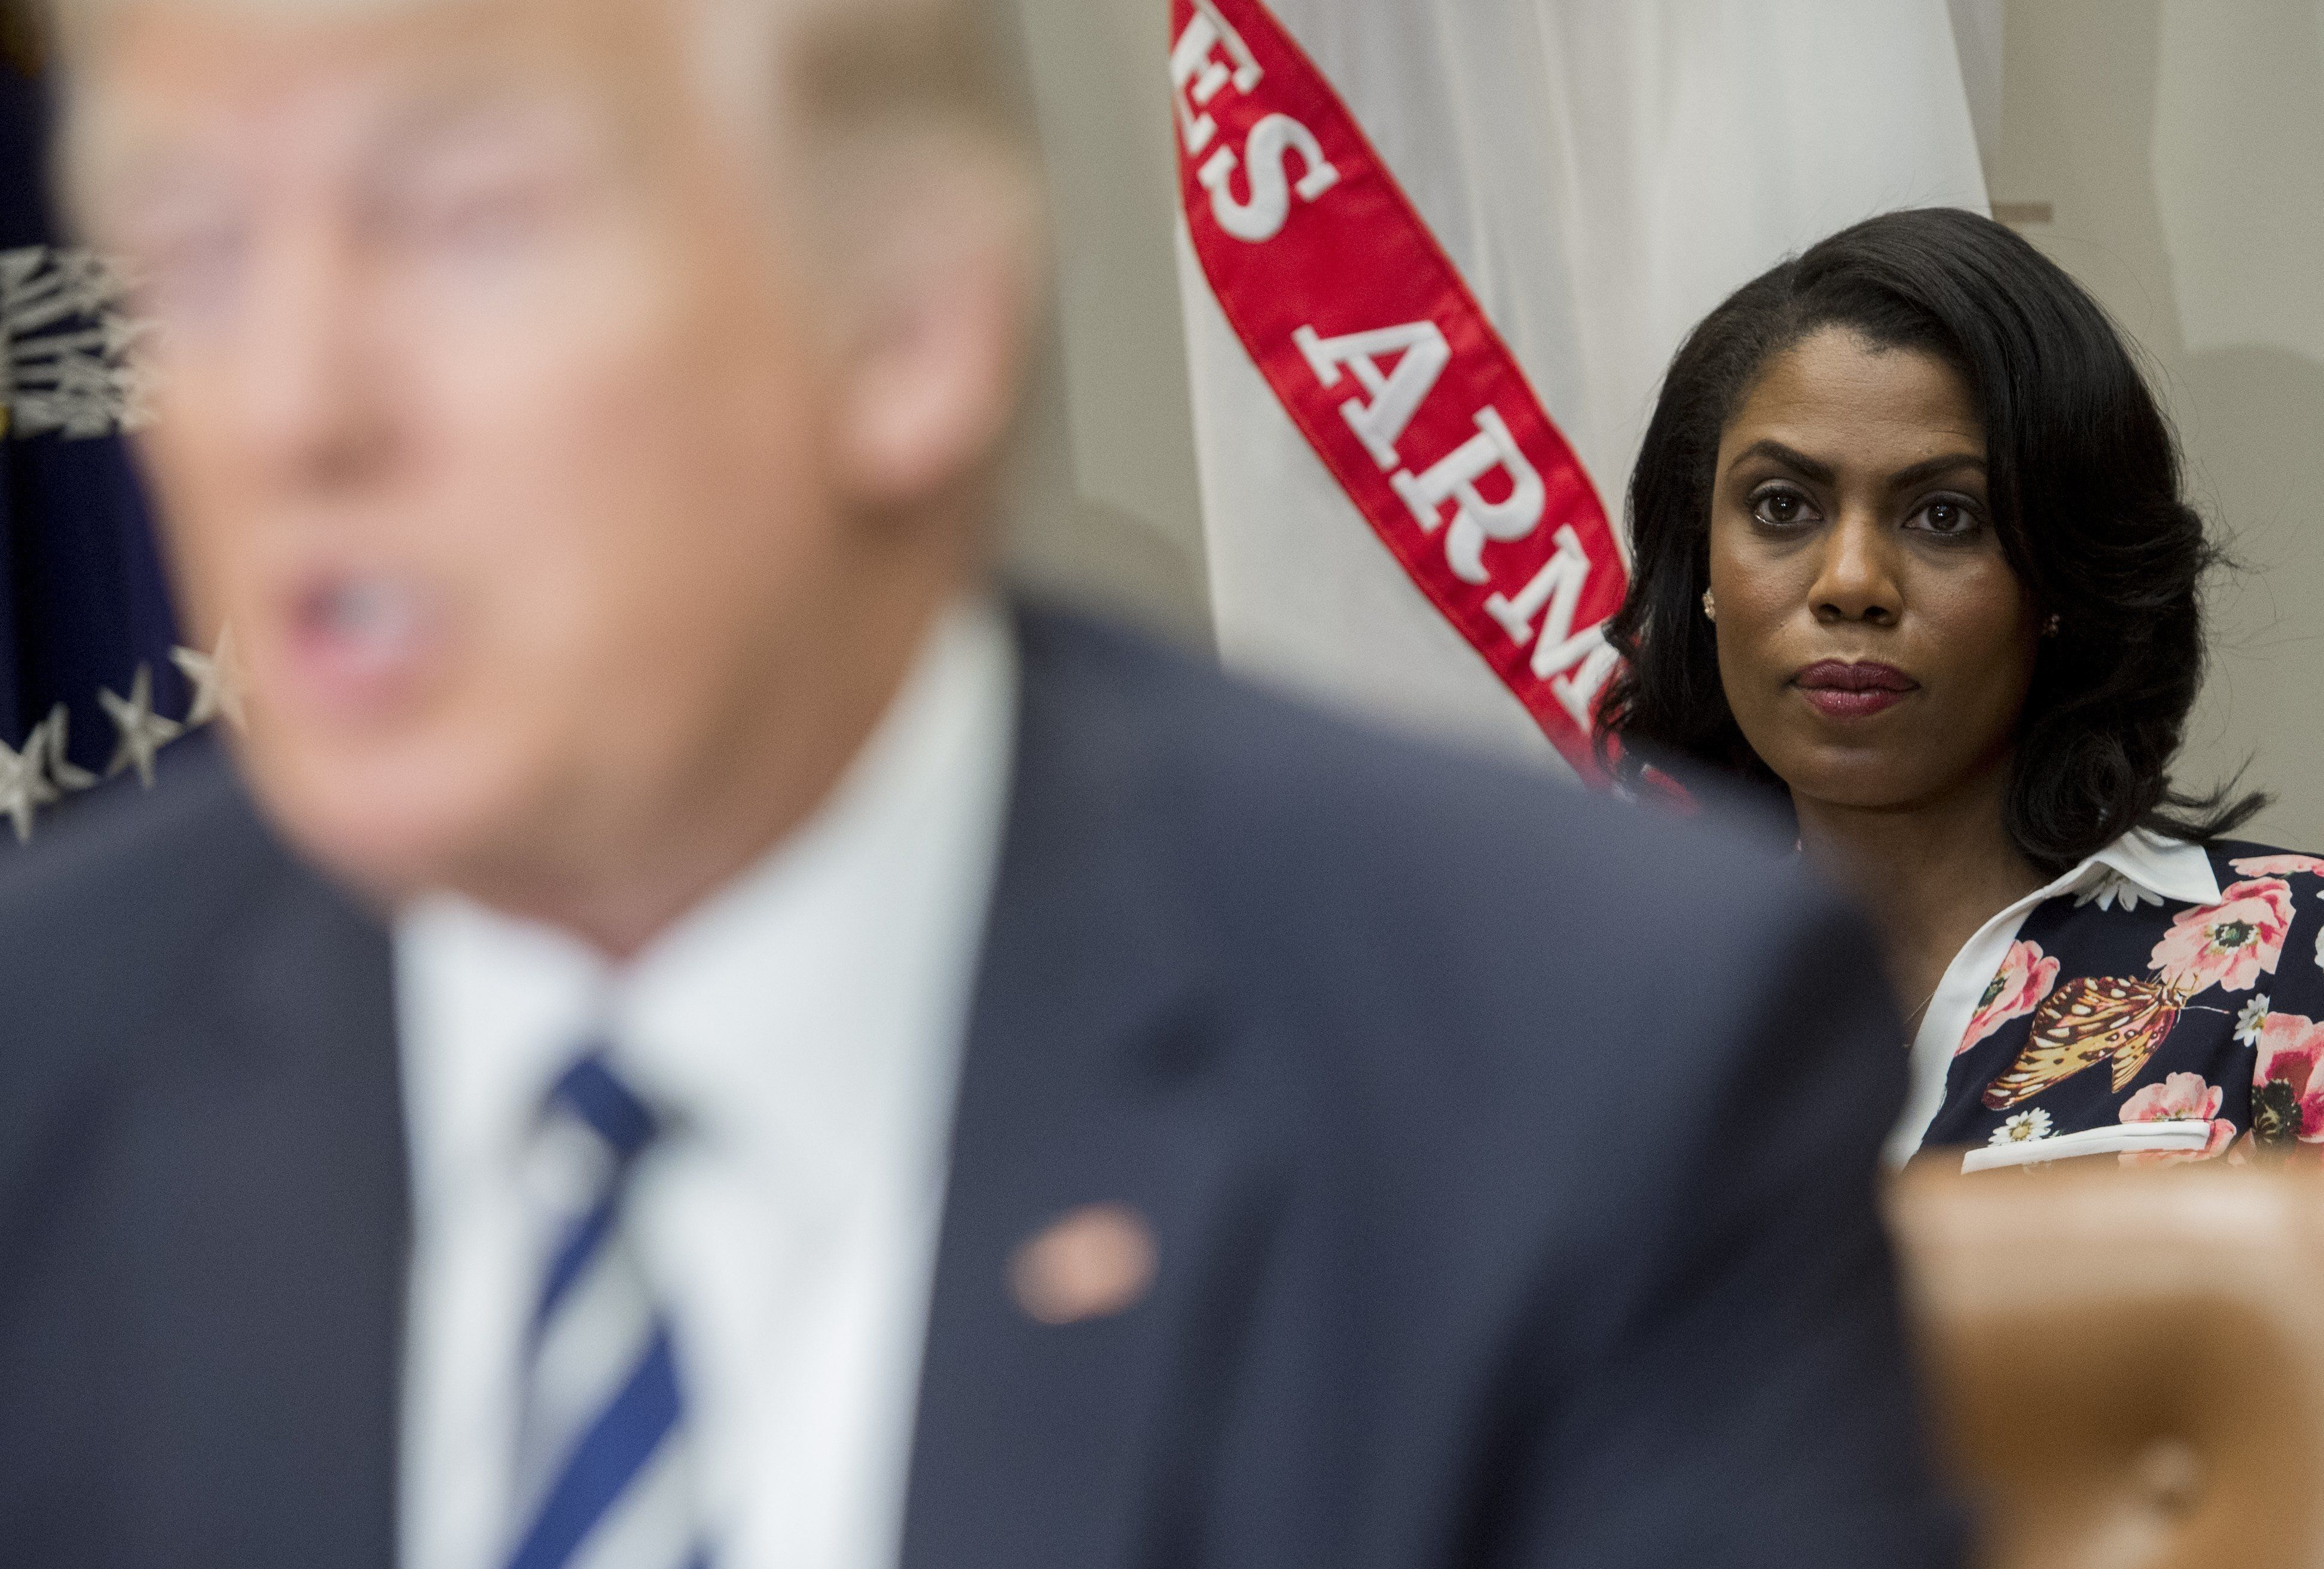 Omarosa claims Trump campaign offered her job in exchange for silence